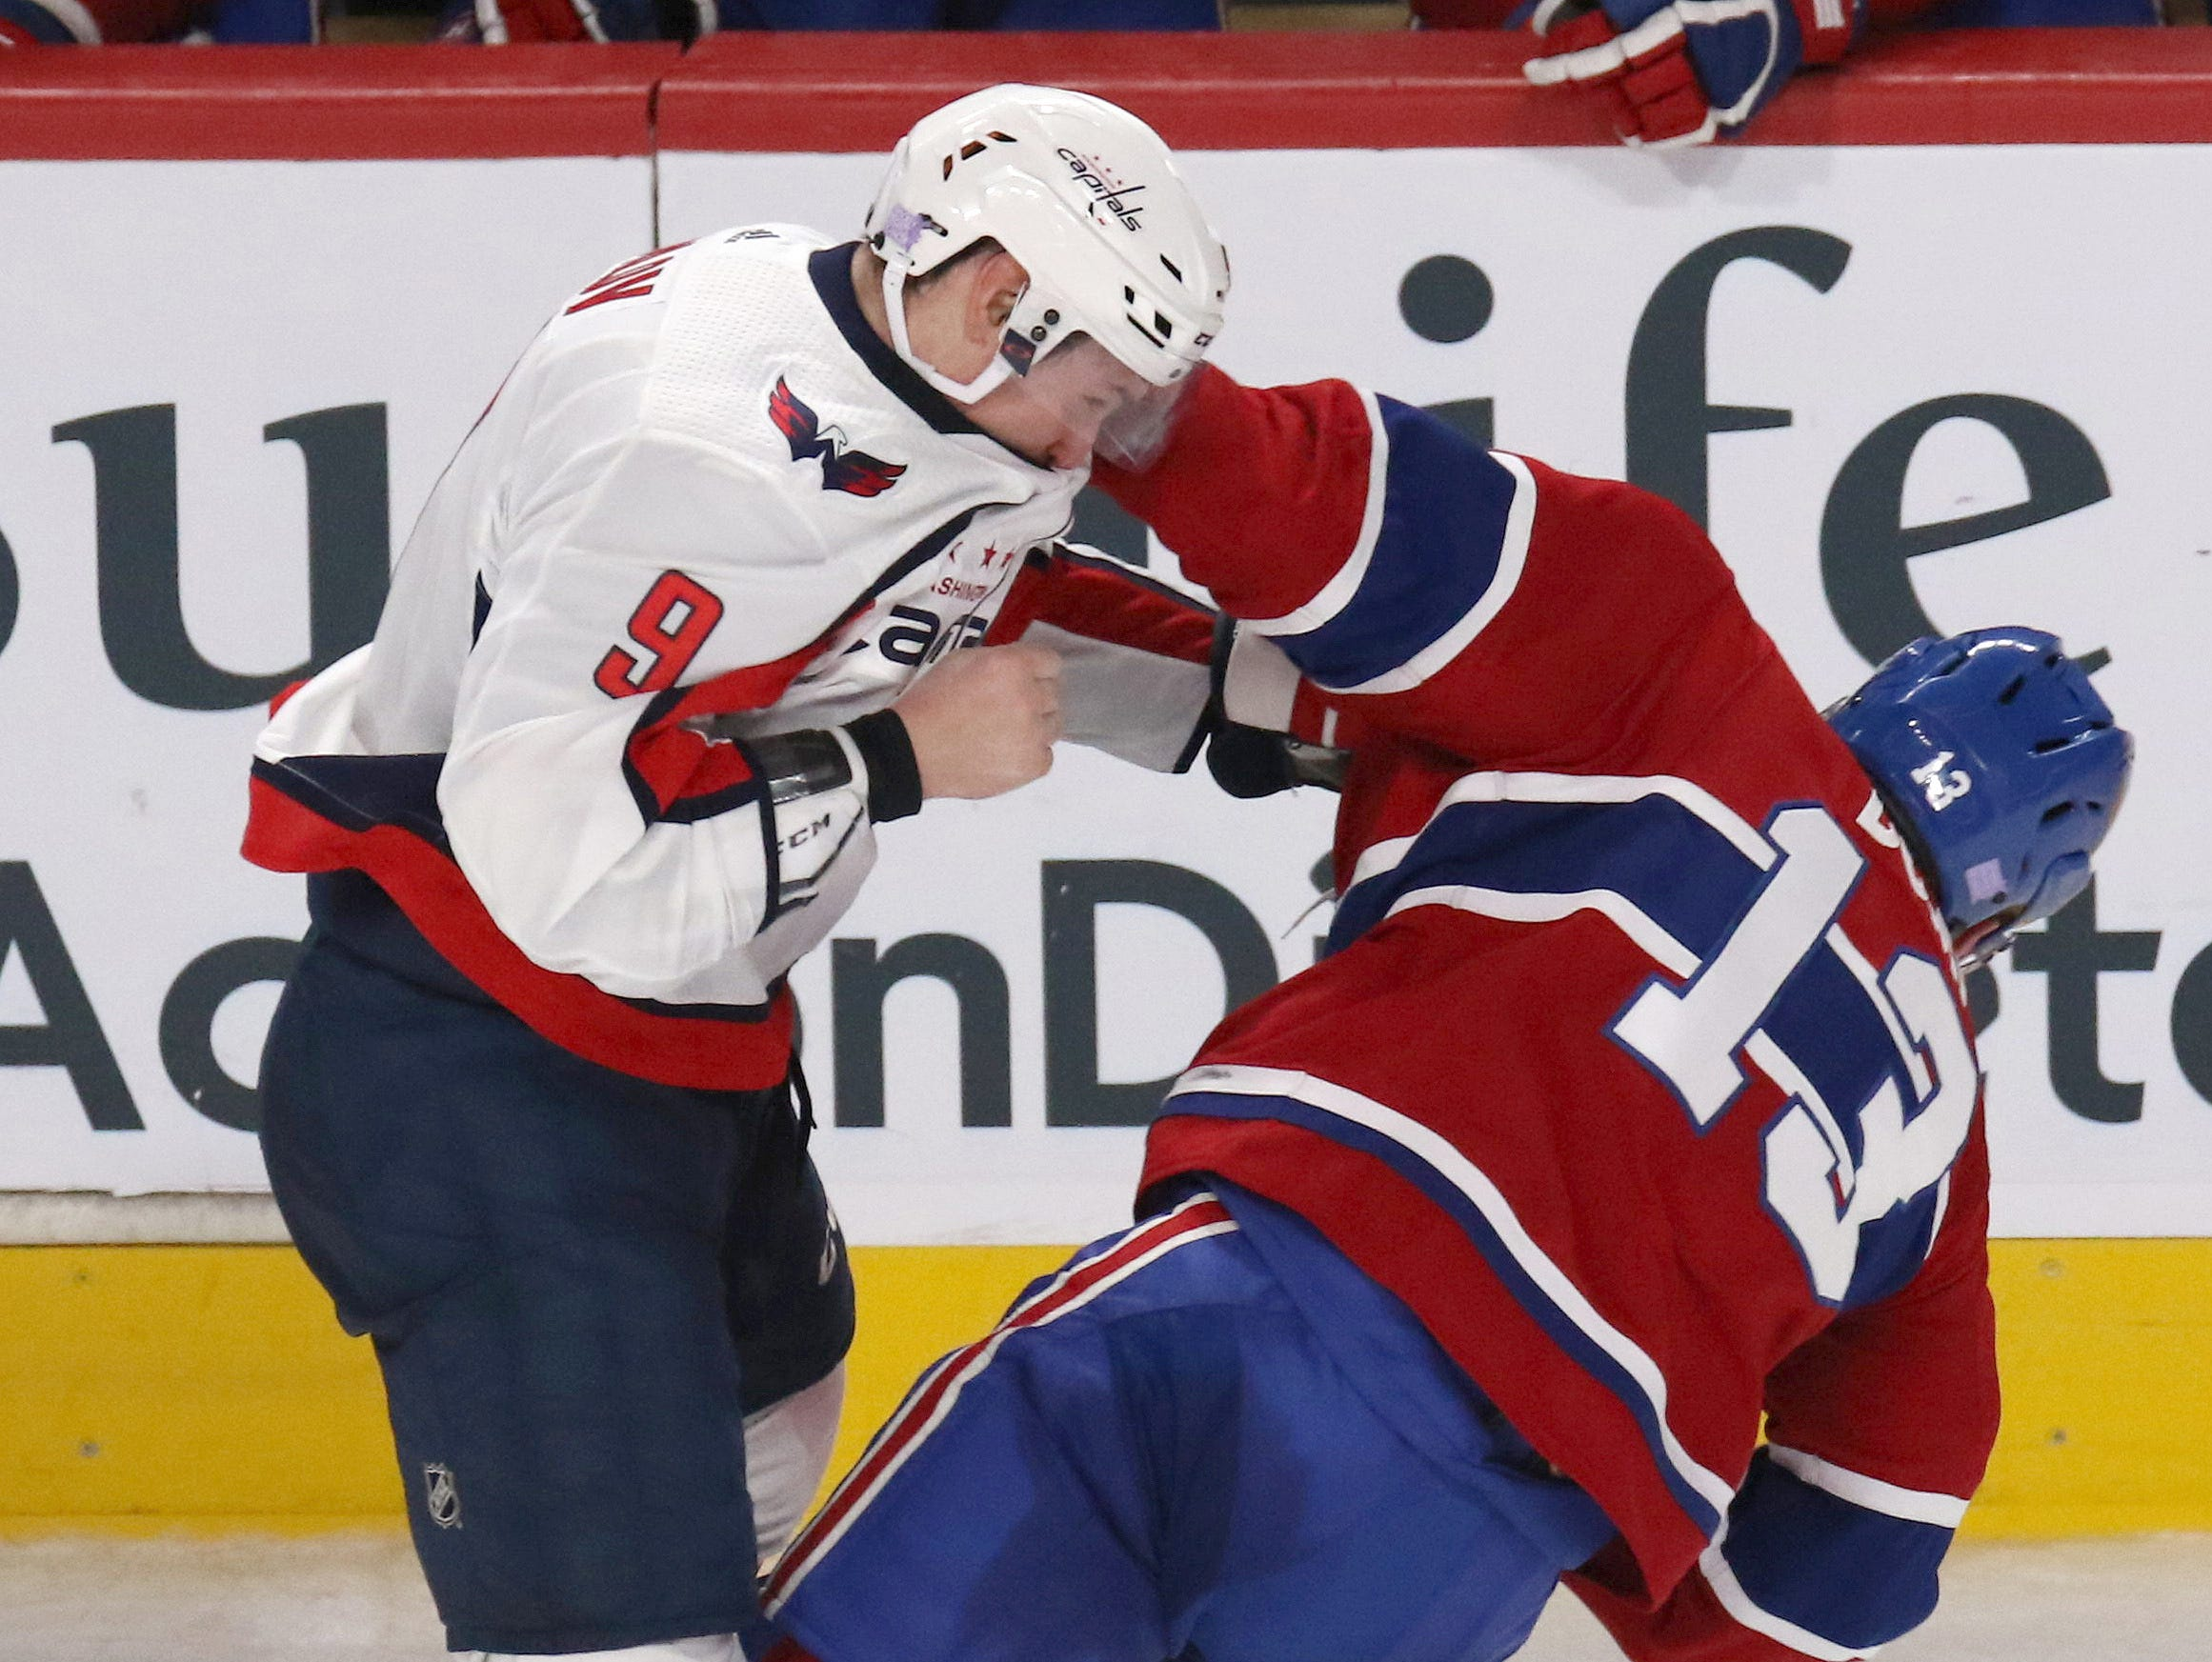 Nov. 19: Washington Capitals' Dmitry Orlov vs. Montreal Canadiens' Max Domi.